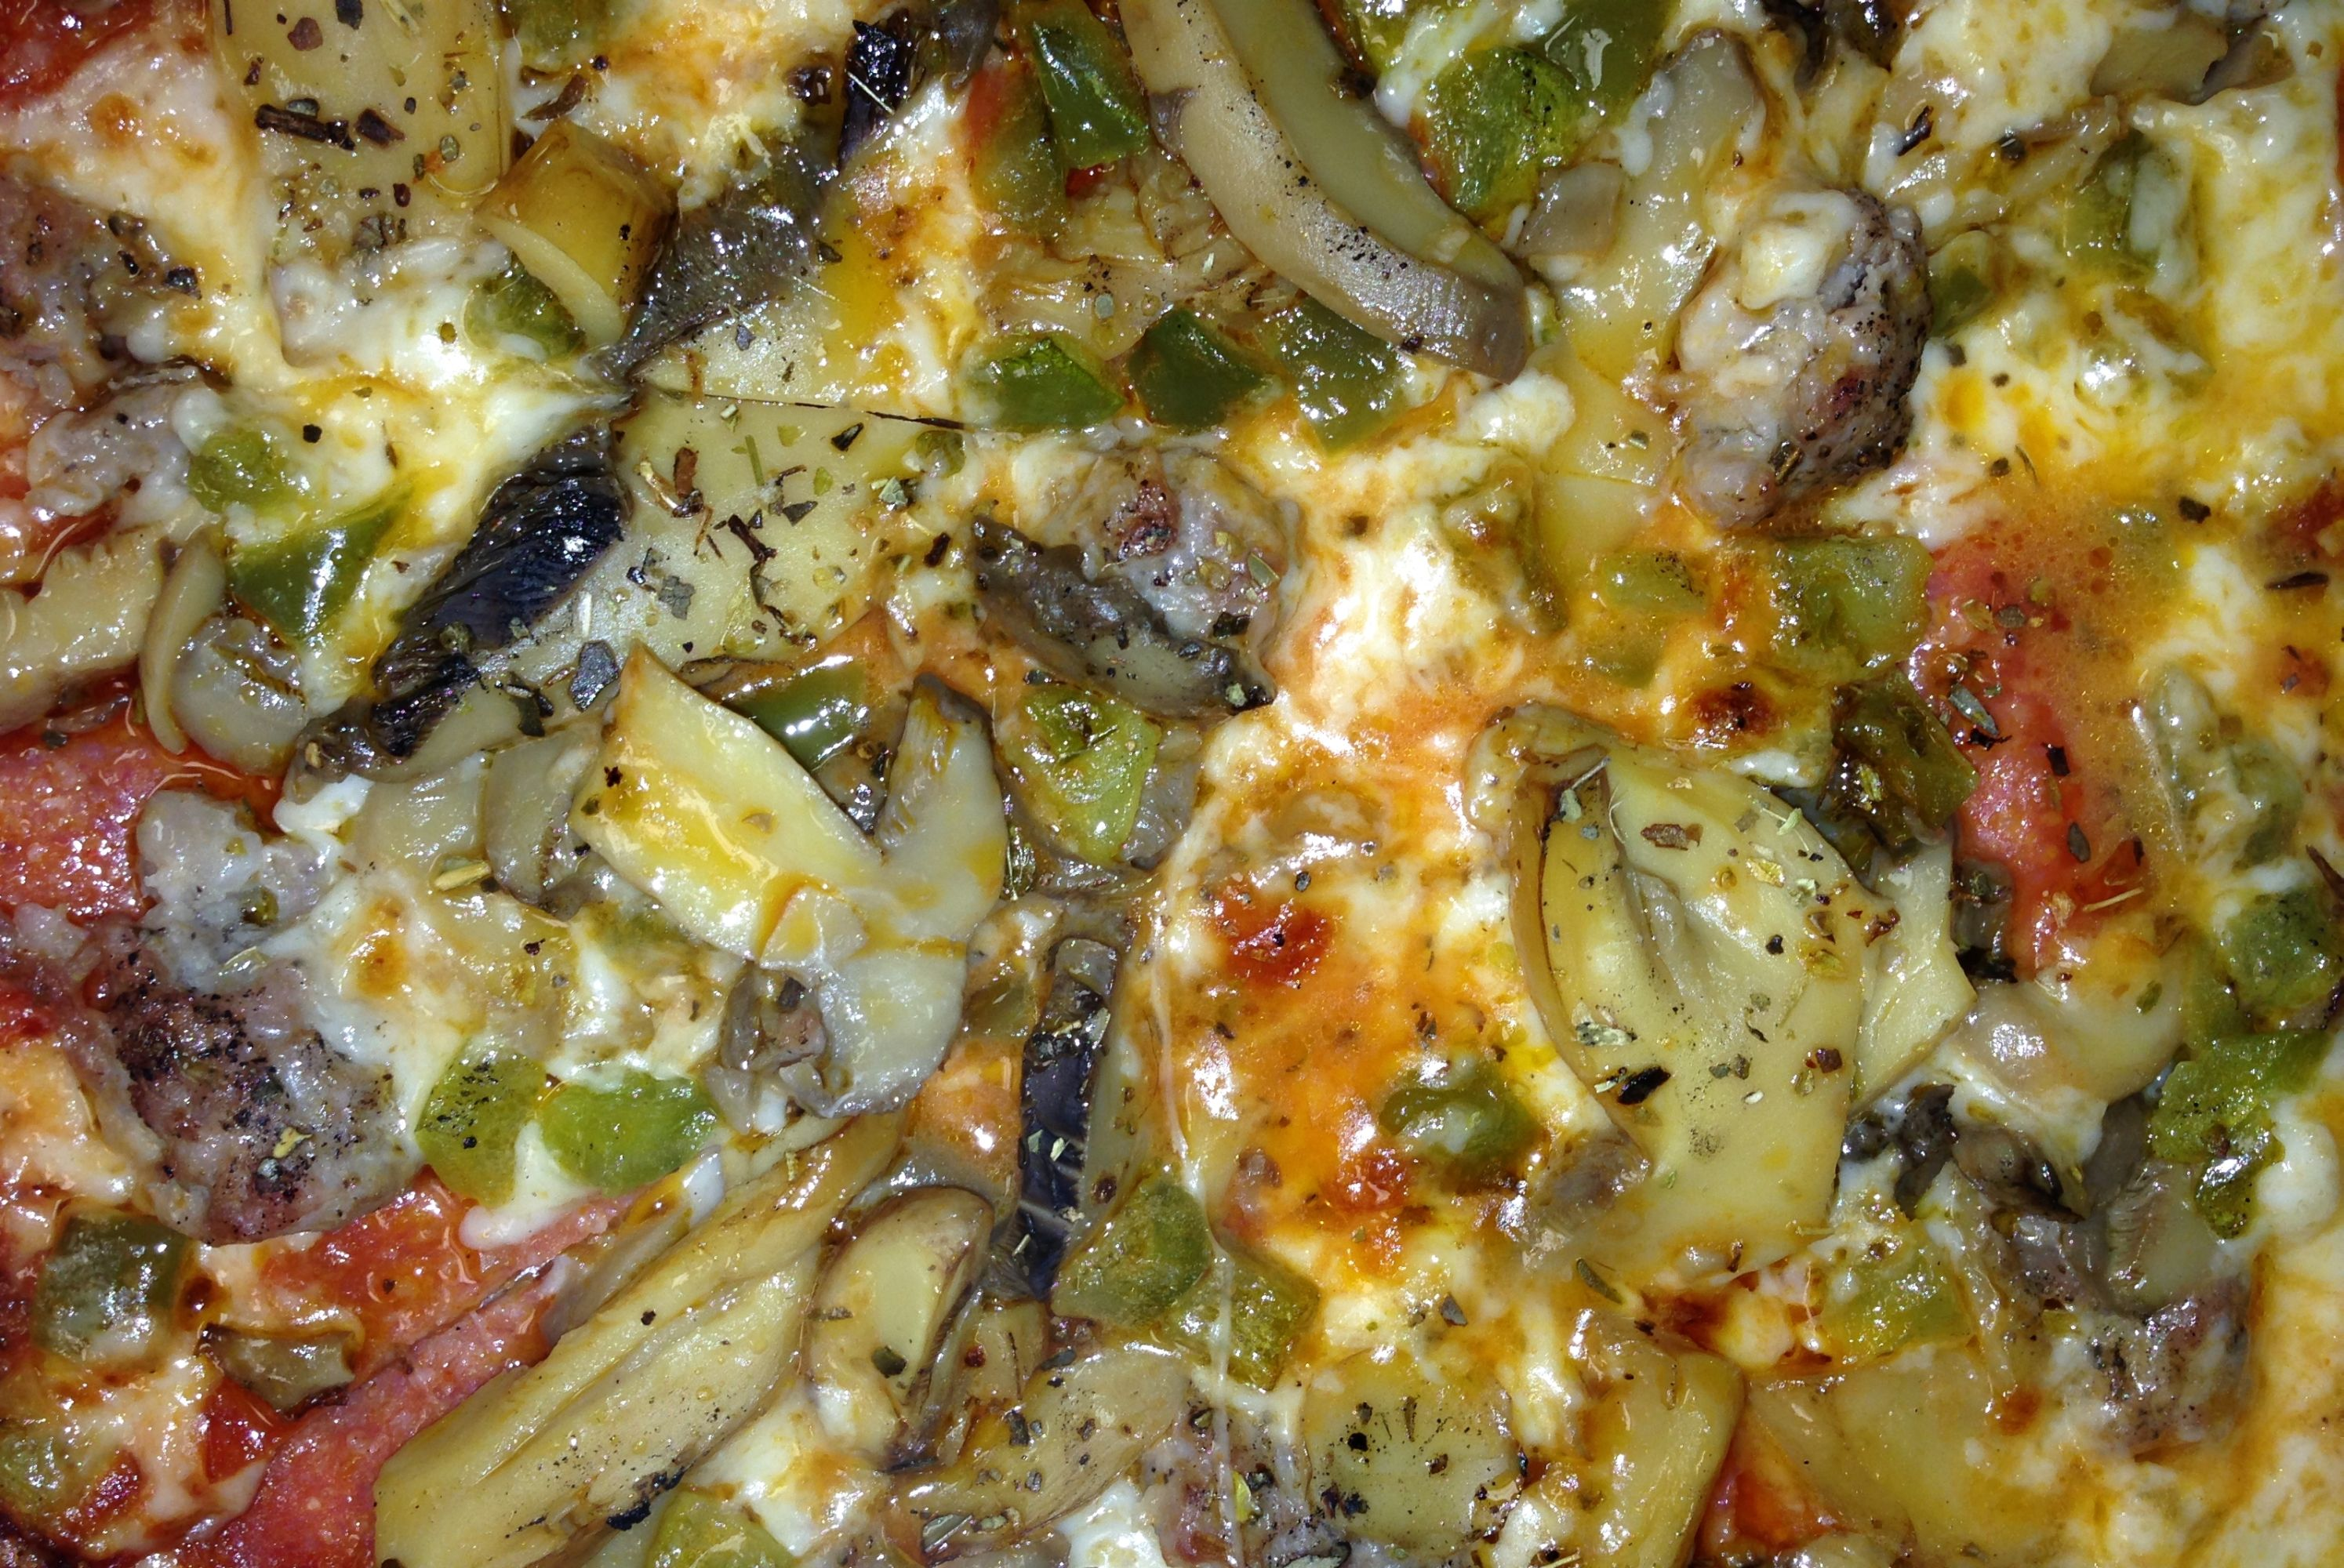 Fricanos_Zoomed in EBA Pepperoni, Sausage, Mushroom, Green Pepper Pizza.jpg